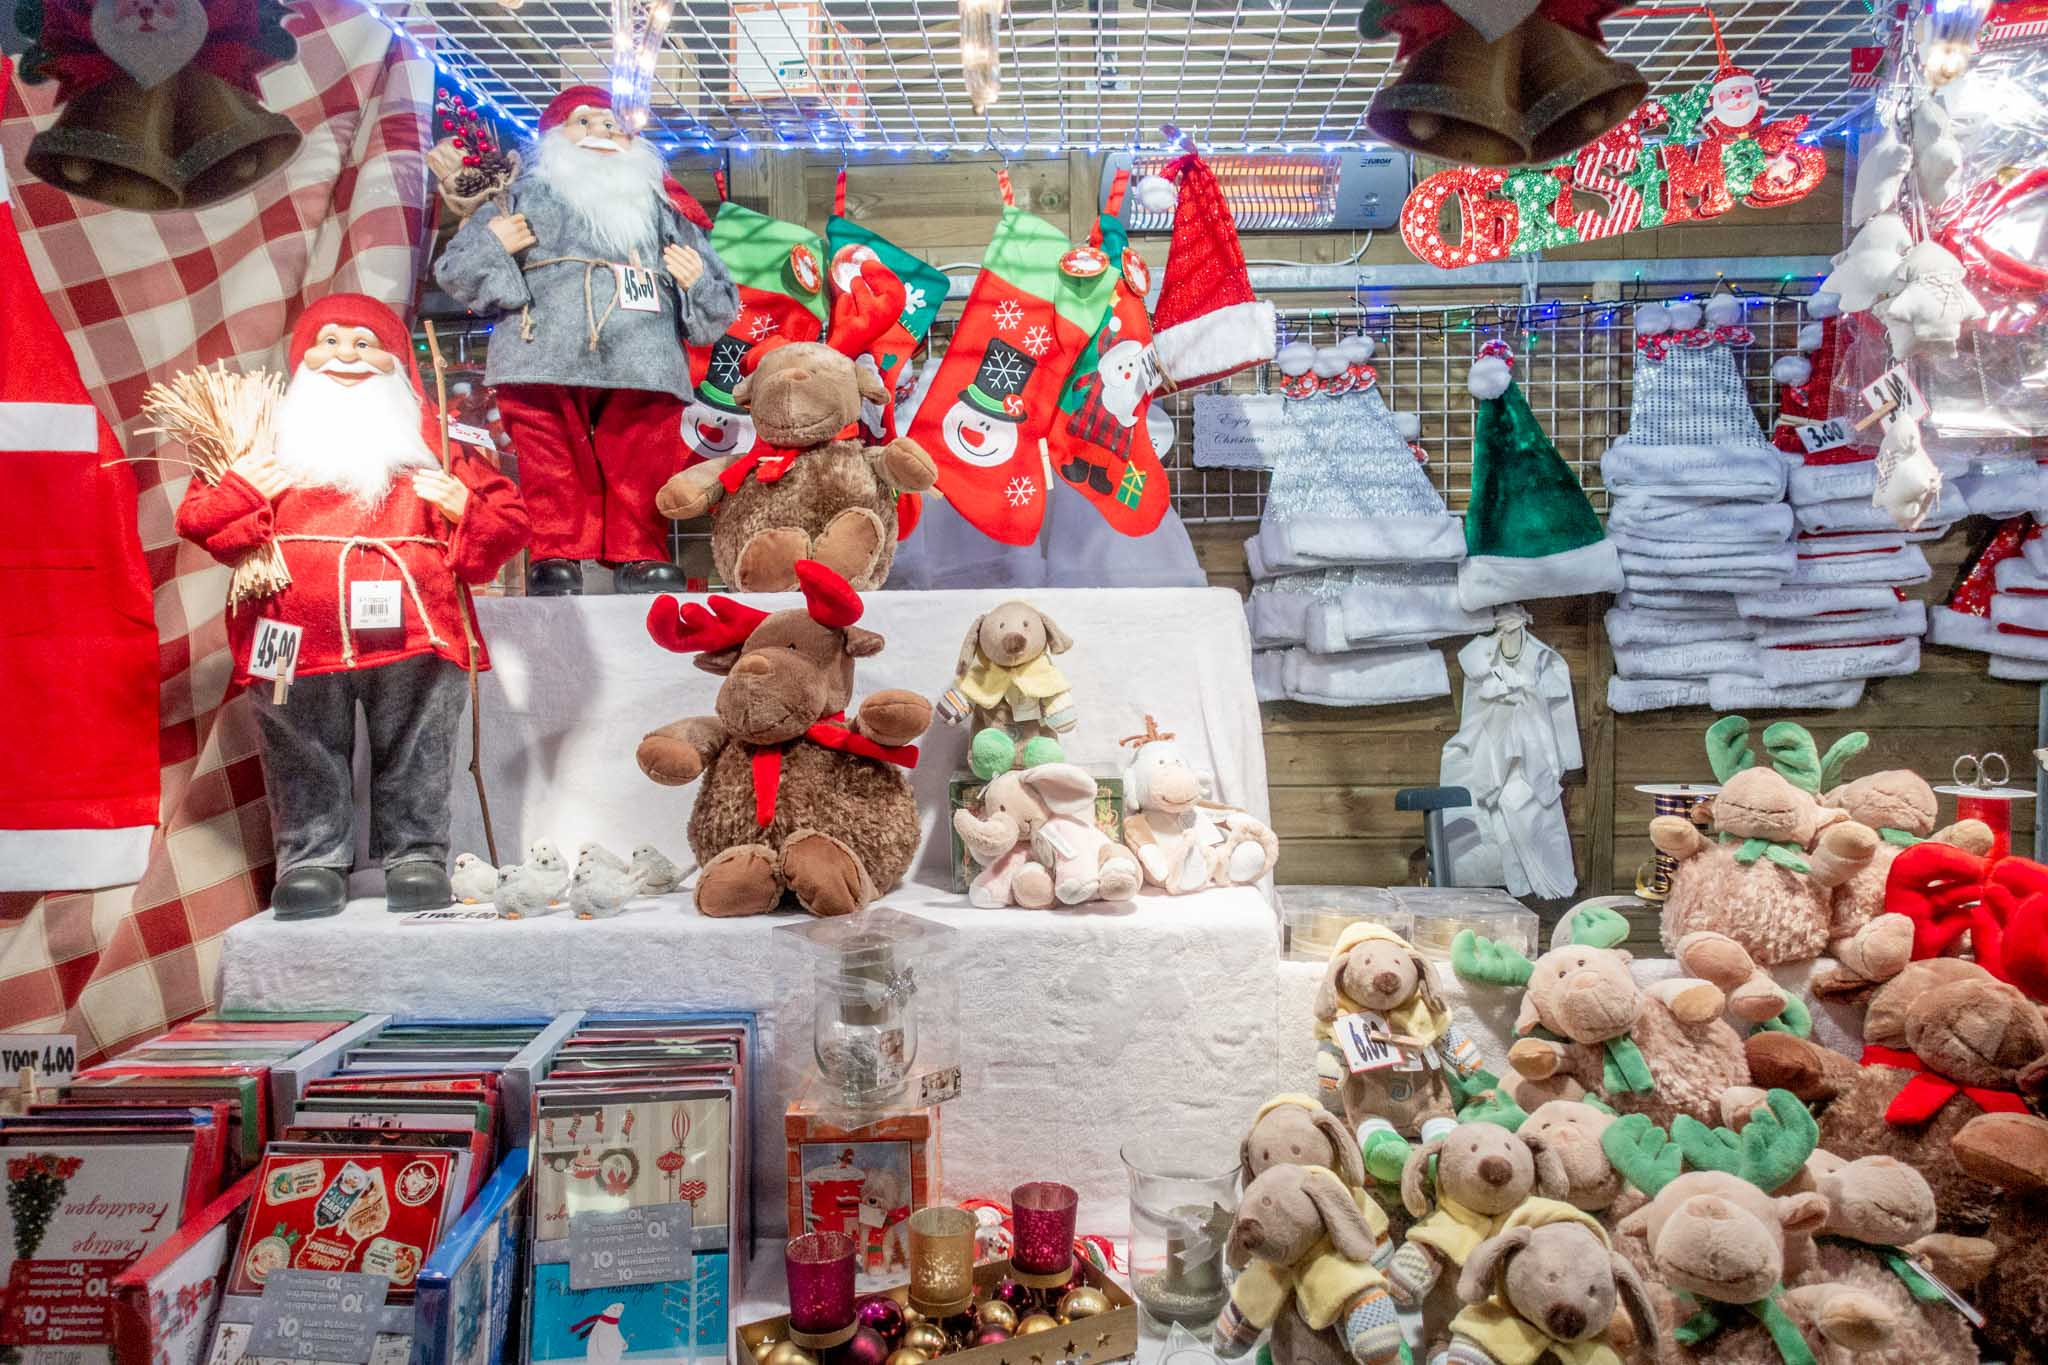 Stuffed animals, Santa hats, and other items for sale at the Bruges Xmas market